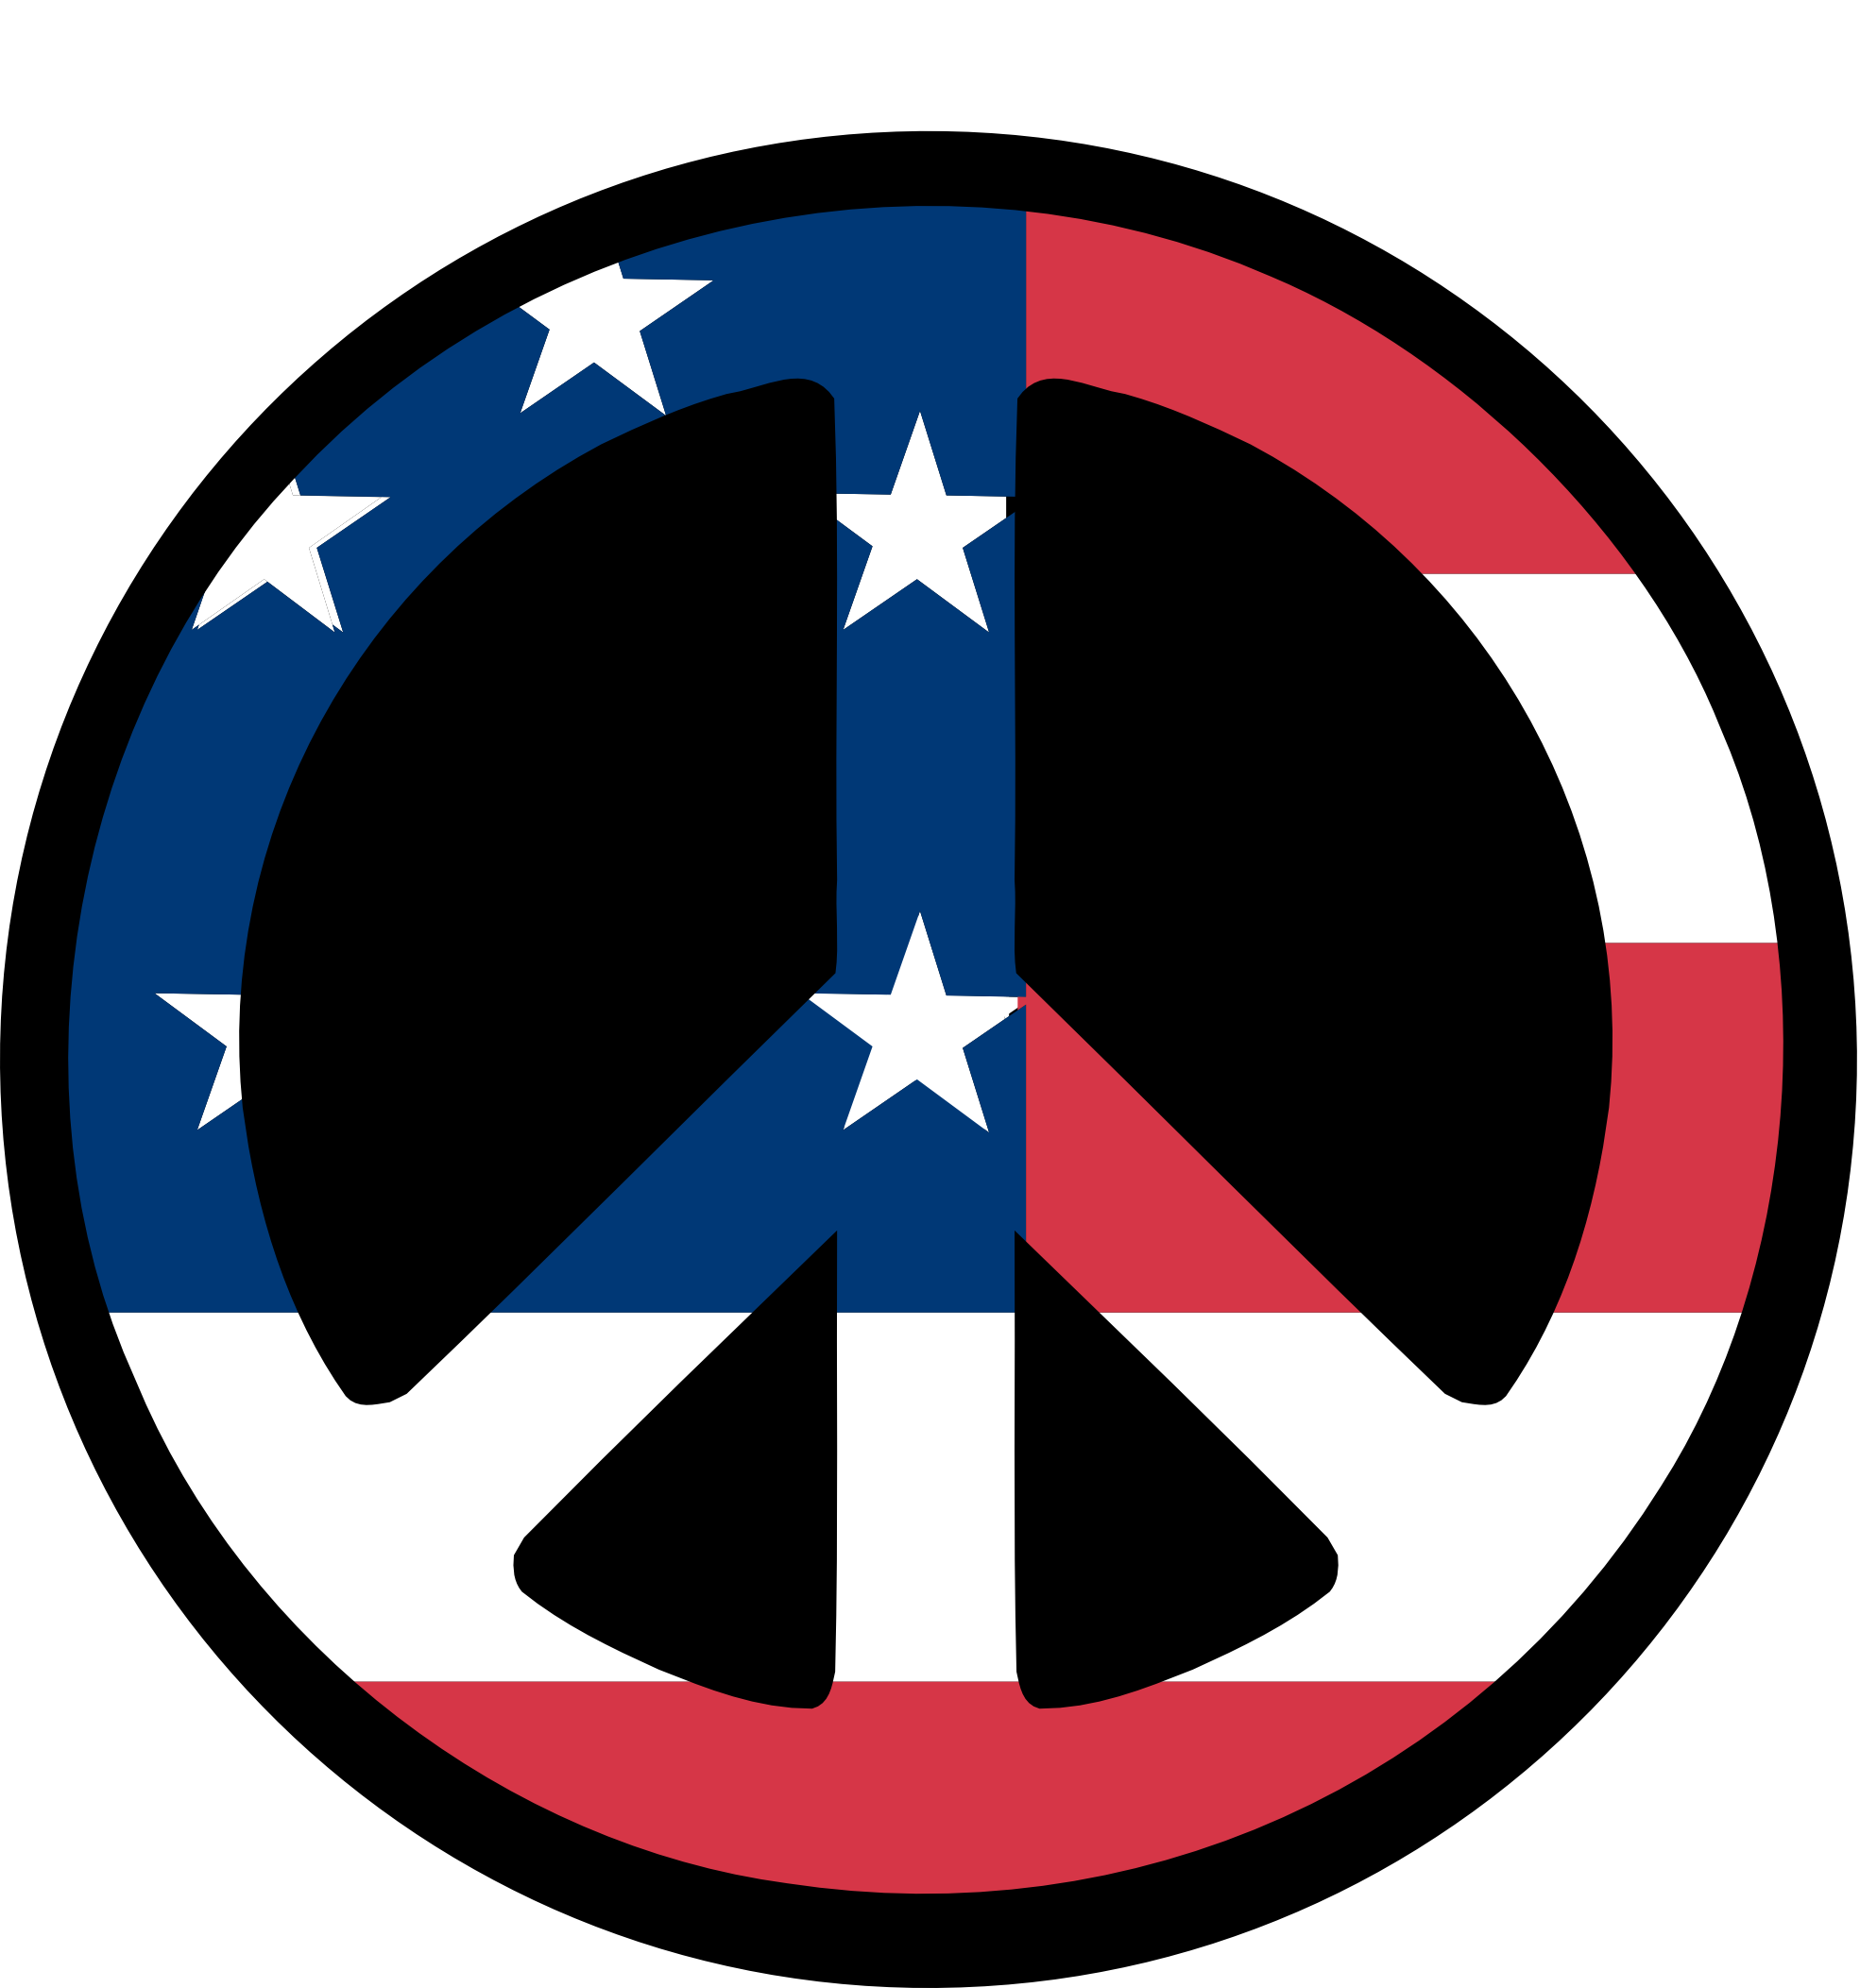 Peace clipart peaceful life. Signs images us flag